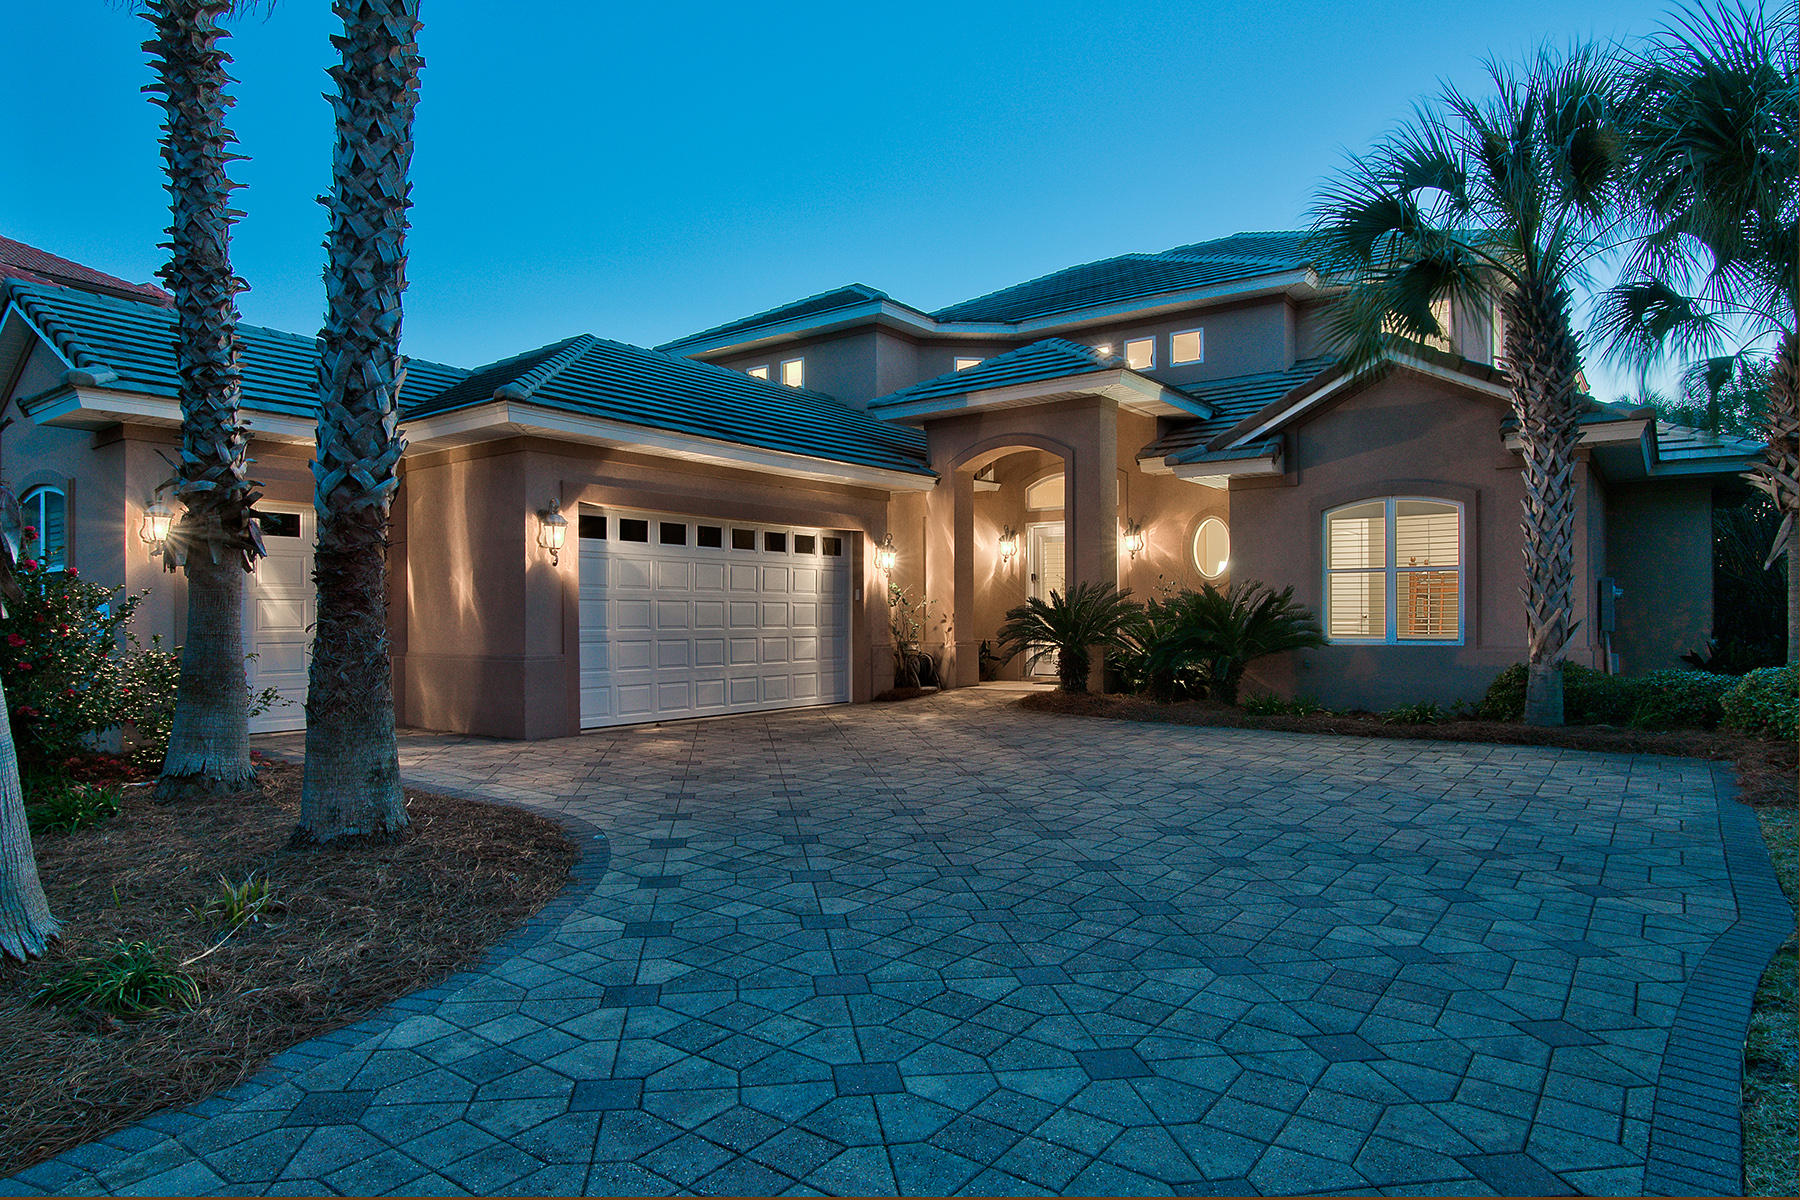 Single Family Home for Sale at ELEGANT LAKE FRONT RESIDENCE IN GATED COMMUNITY 68 Tranquility Lane Destin, Florida, 32541 United States